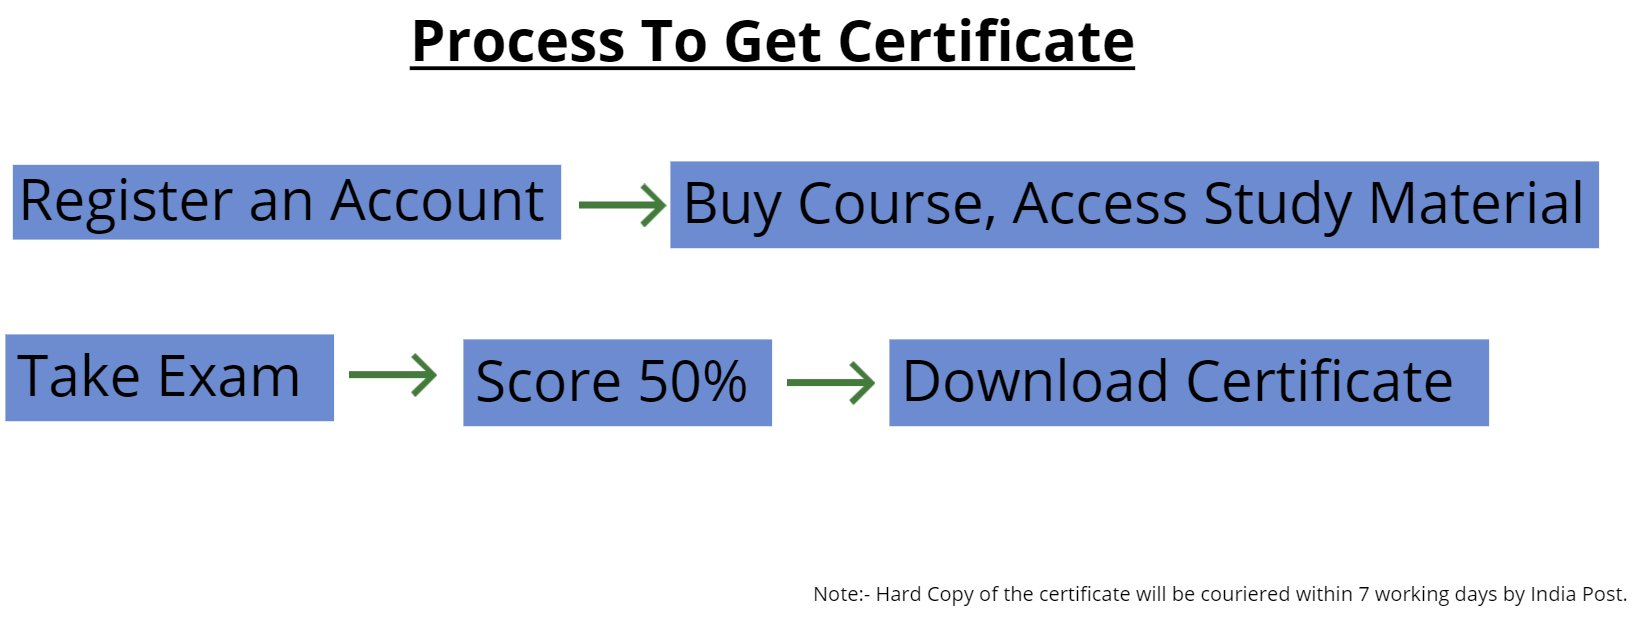 Process To Get Certificate